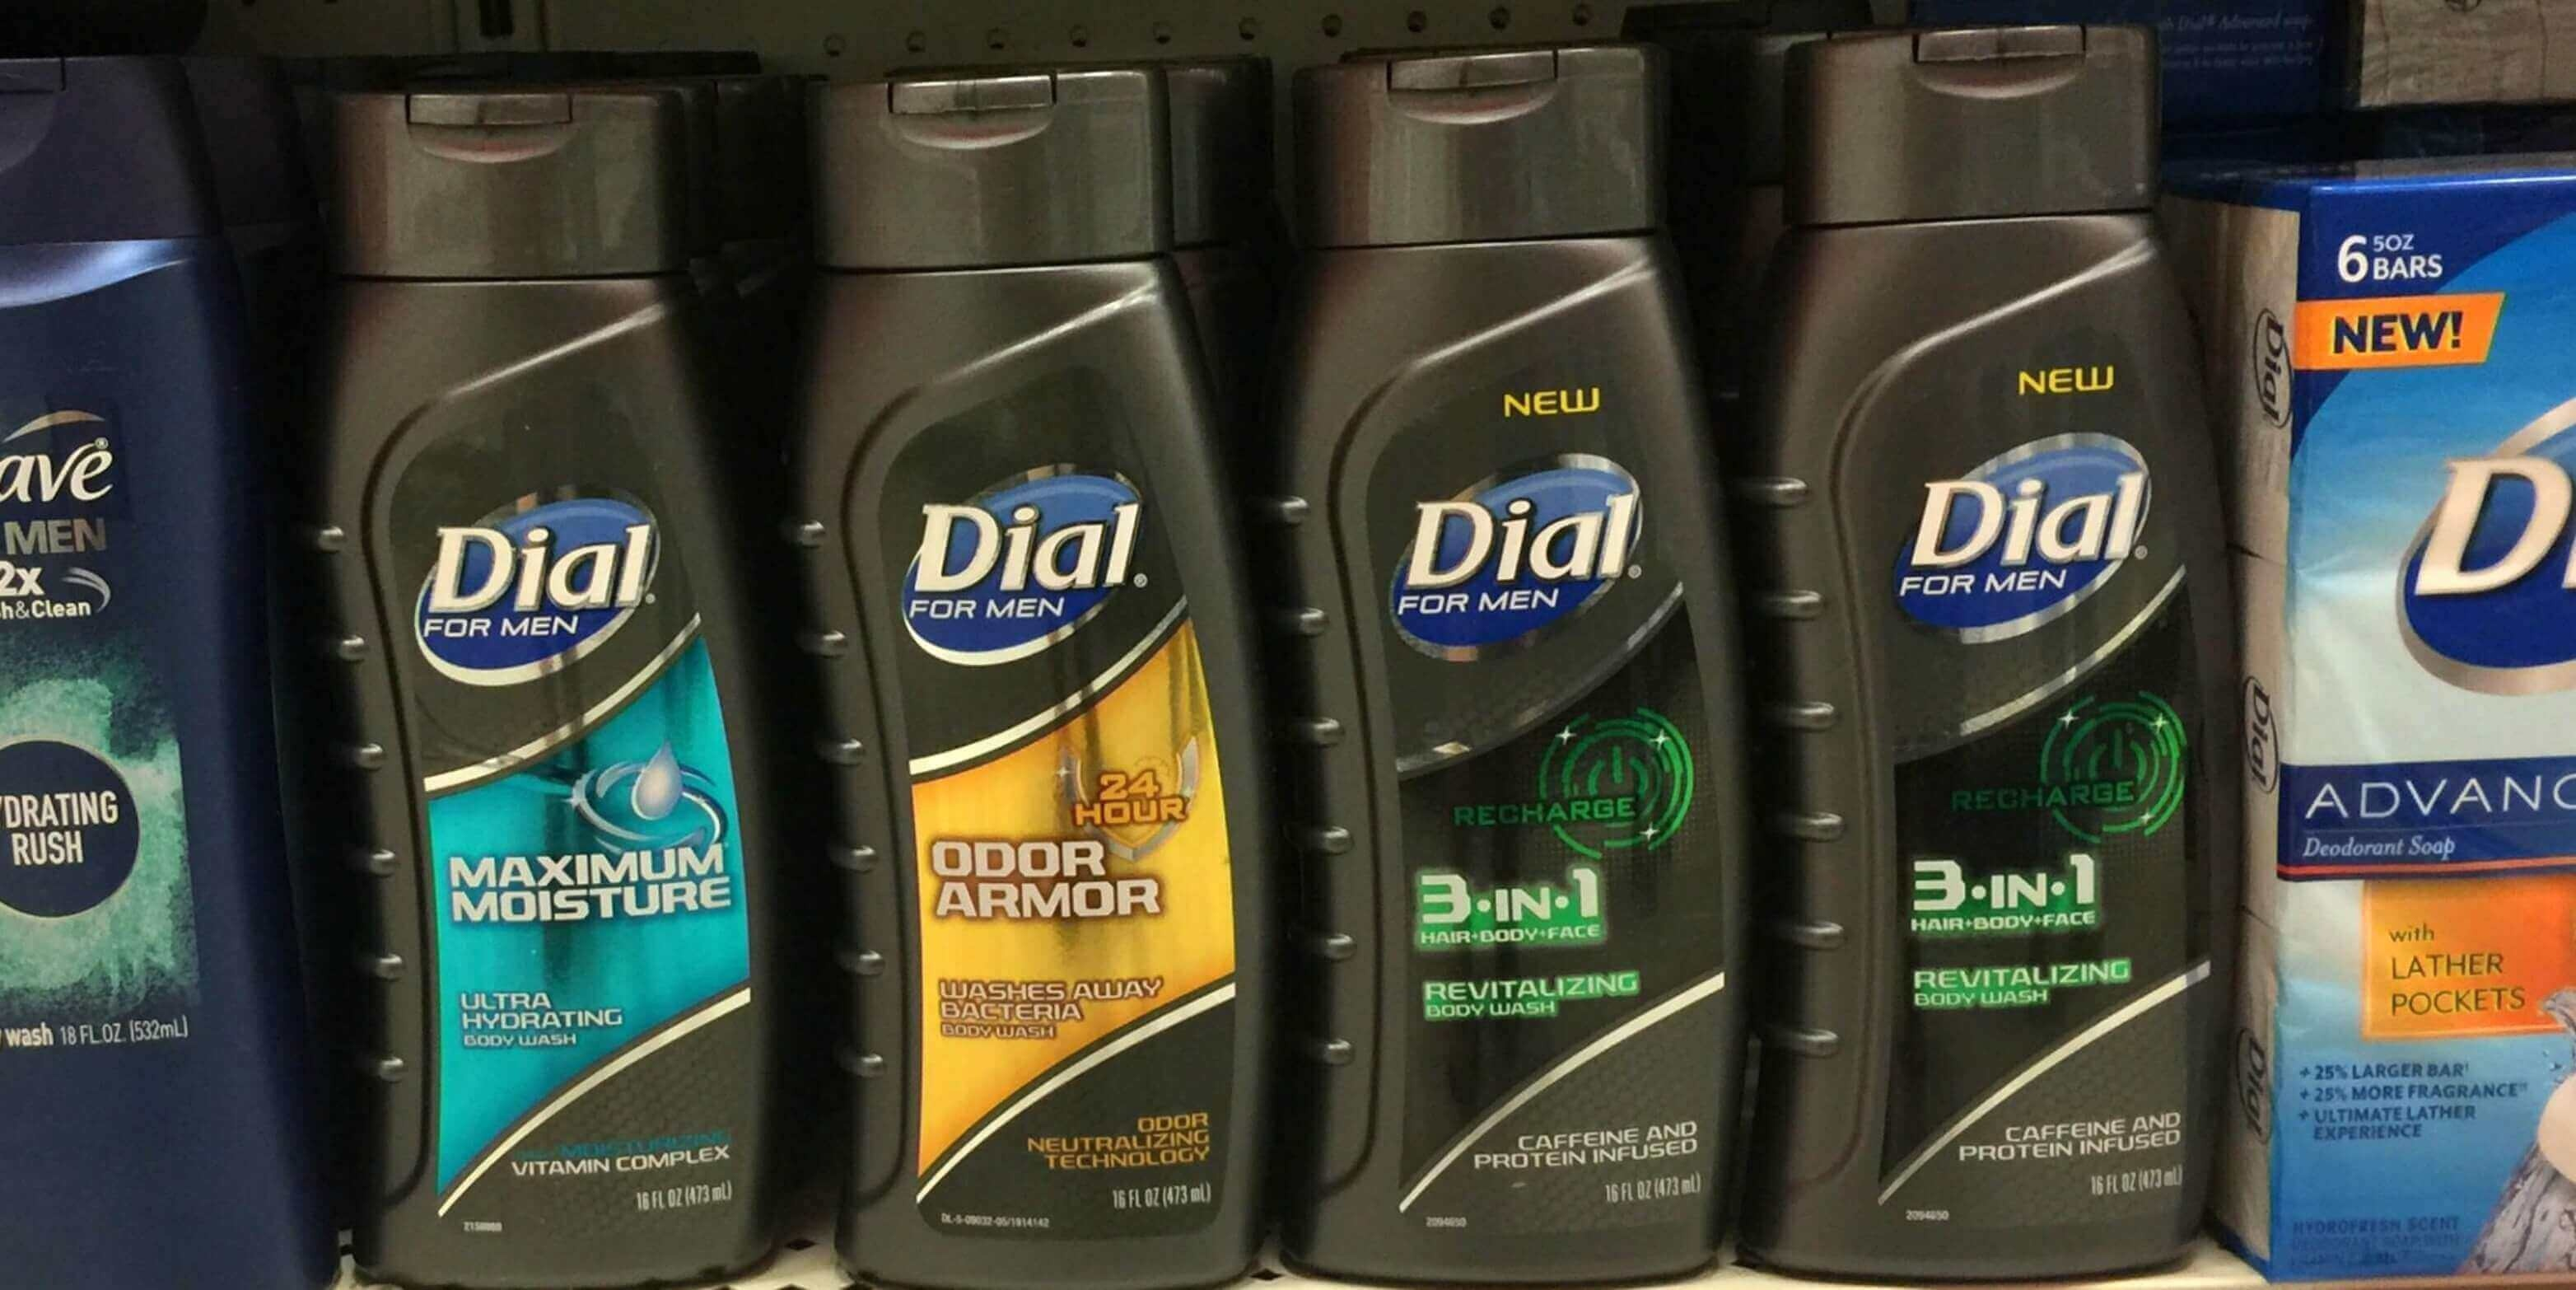 $5/$20 Target Personal Care Gift Card Deal - Free Mitchum Deodorant - Free Printable Coupons For Mitchum Deodorant